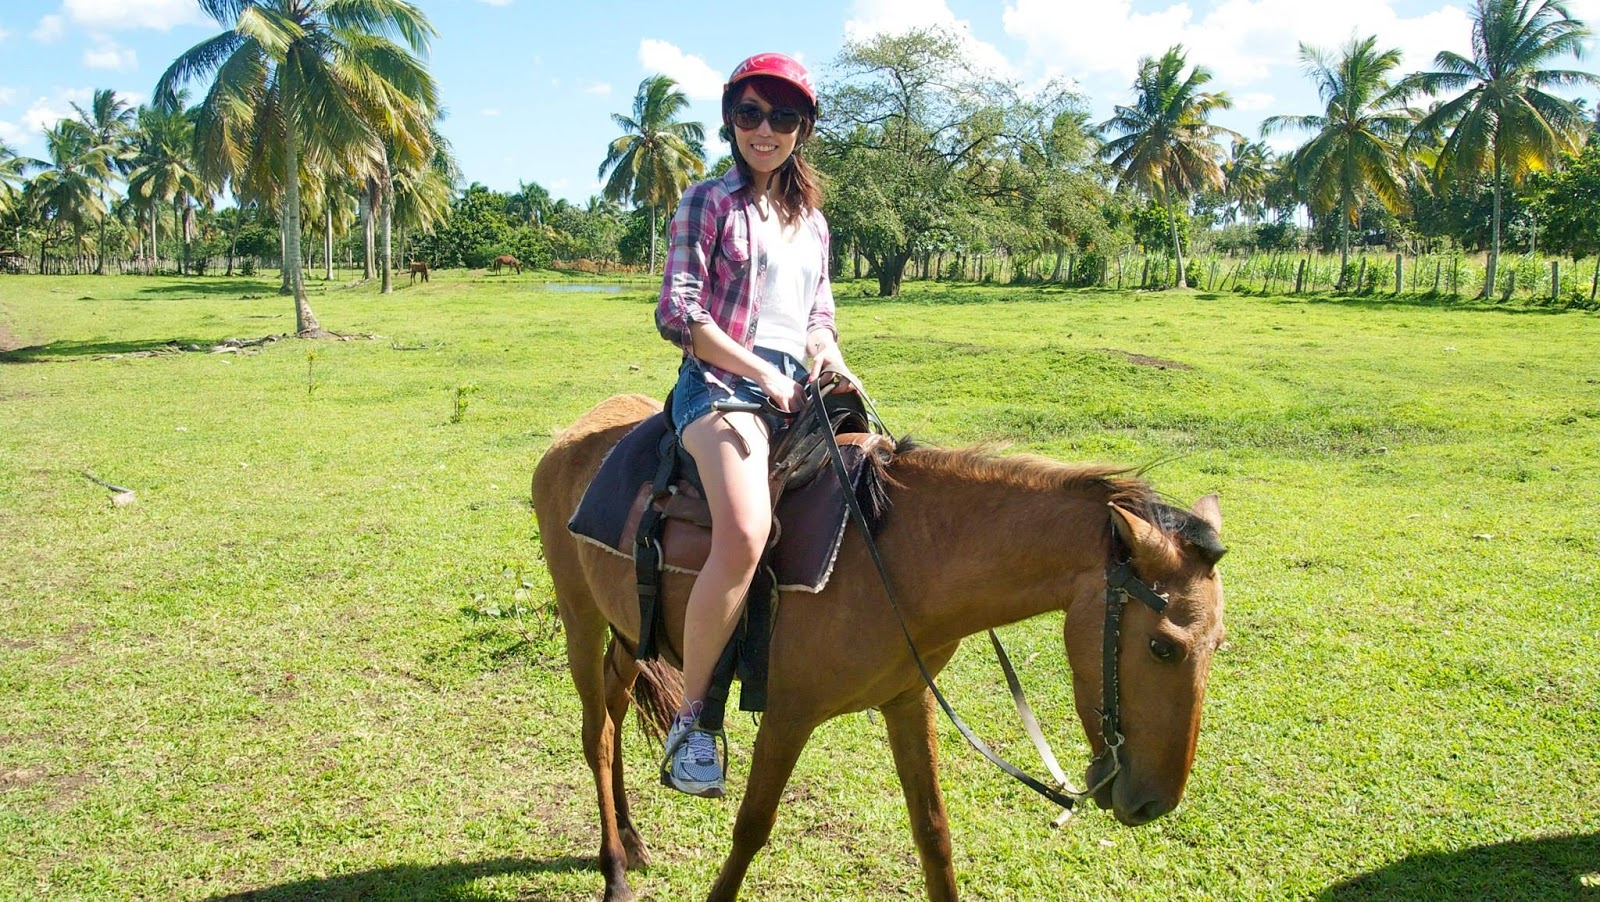 Travel tips for a fun adventure in Punta Cana